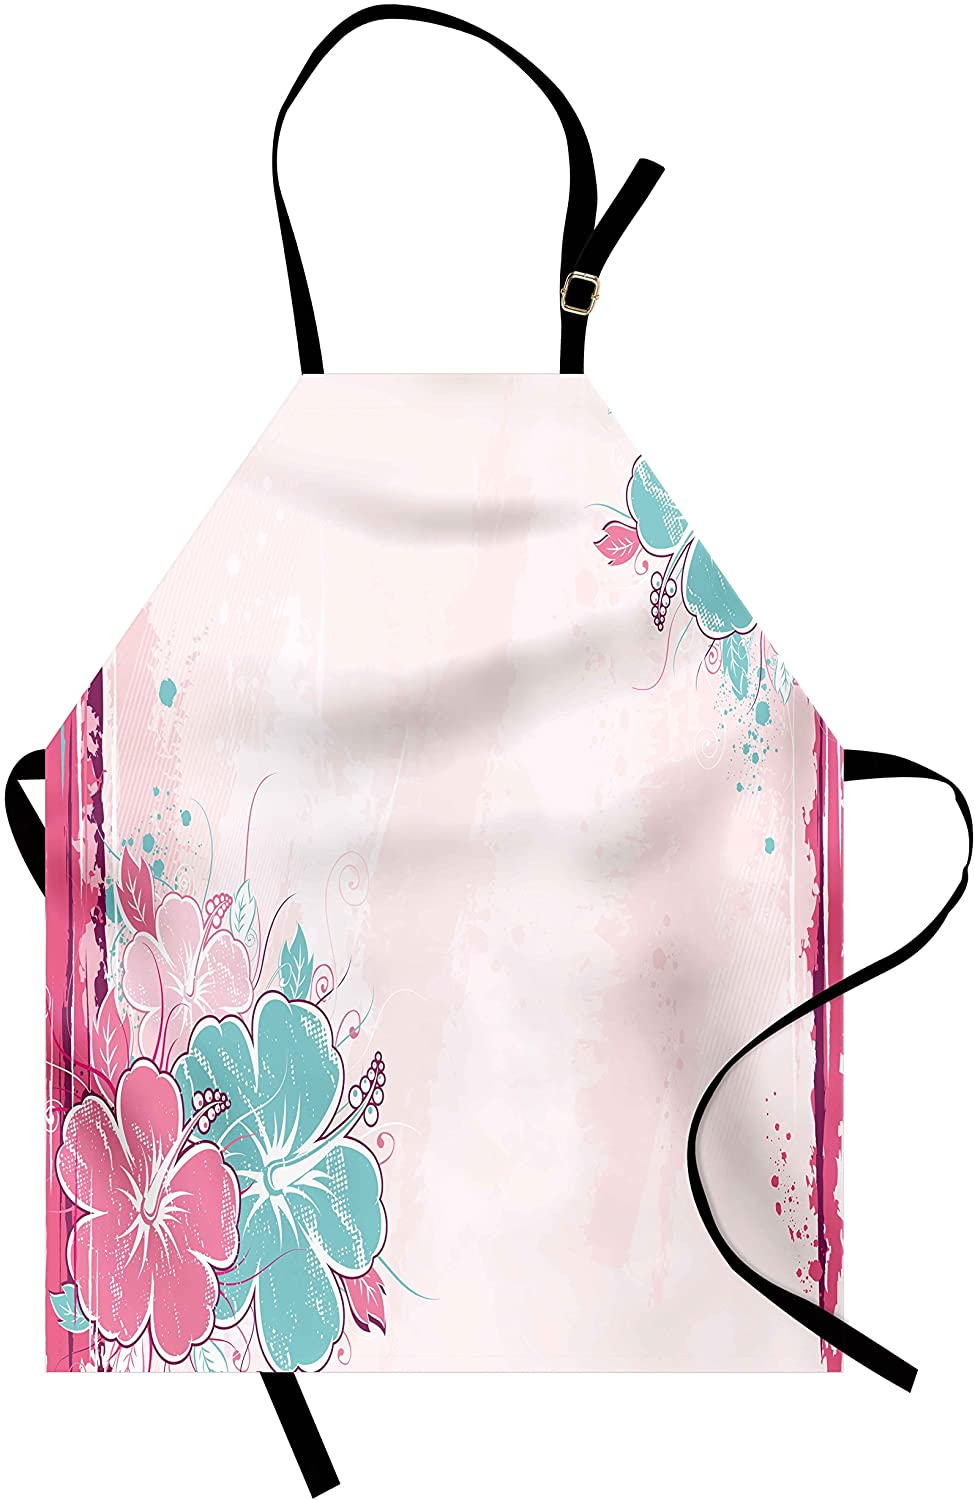 Ambesonne Flower Apron, Bouquet of Hibiscus Florets Exotic Nature Watercolor Style Artwork, Unisex Kitchen Bib Apron with Adjustable Neck for Cooking Baking Gardening, Pale Pink Fuchsia Turquoise